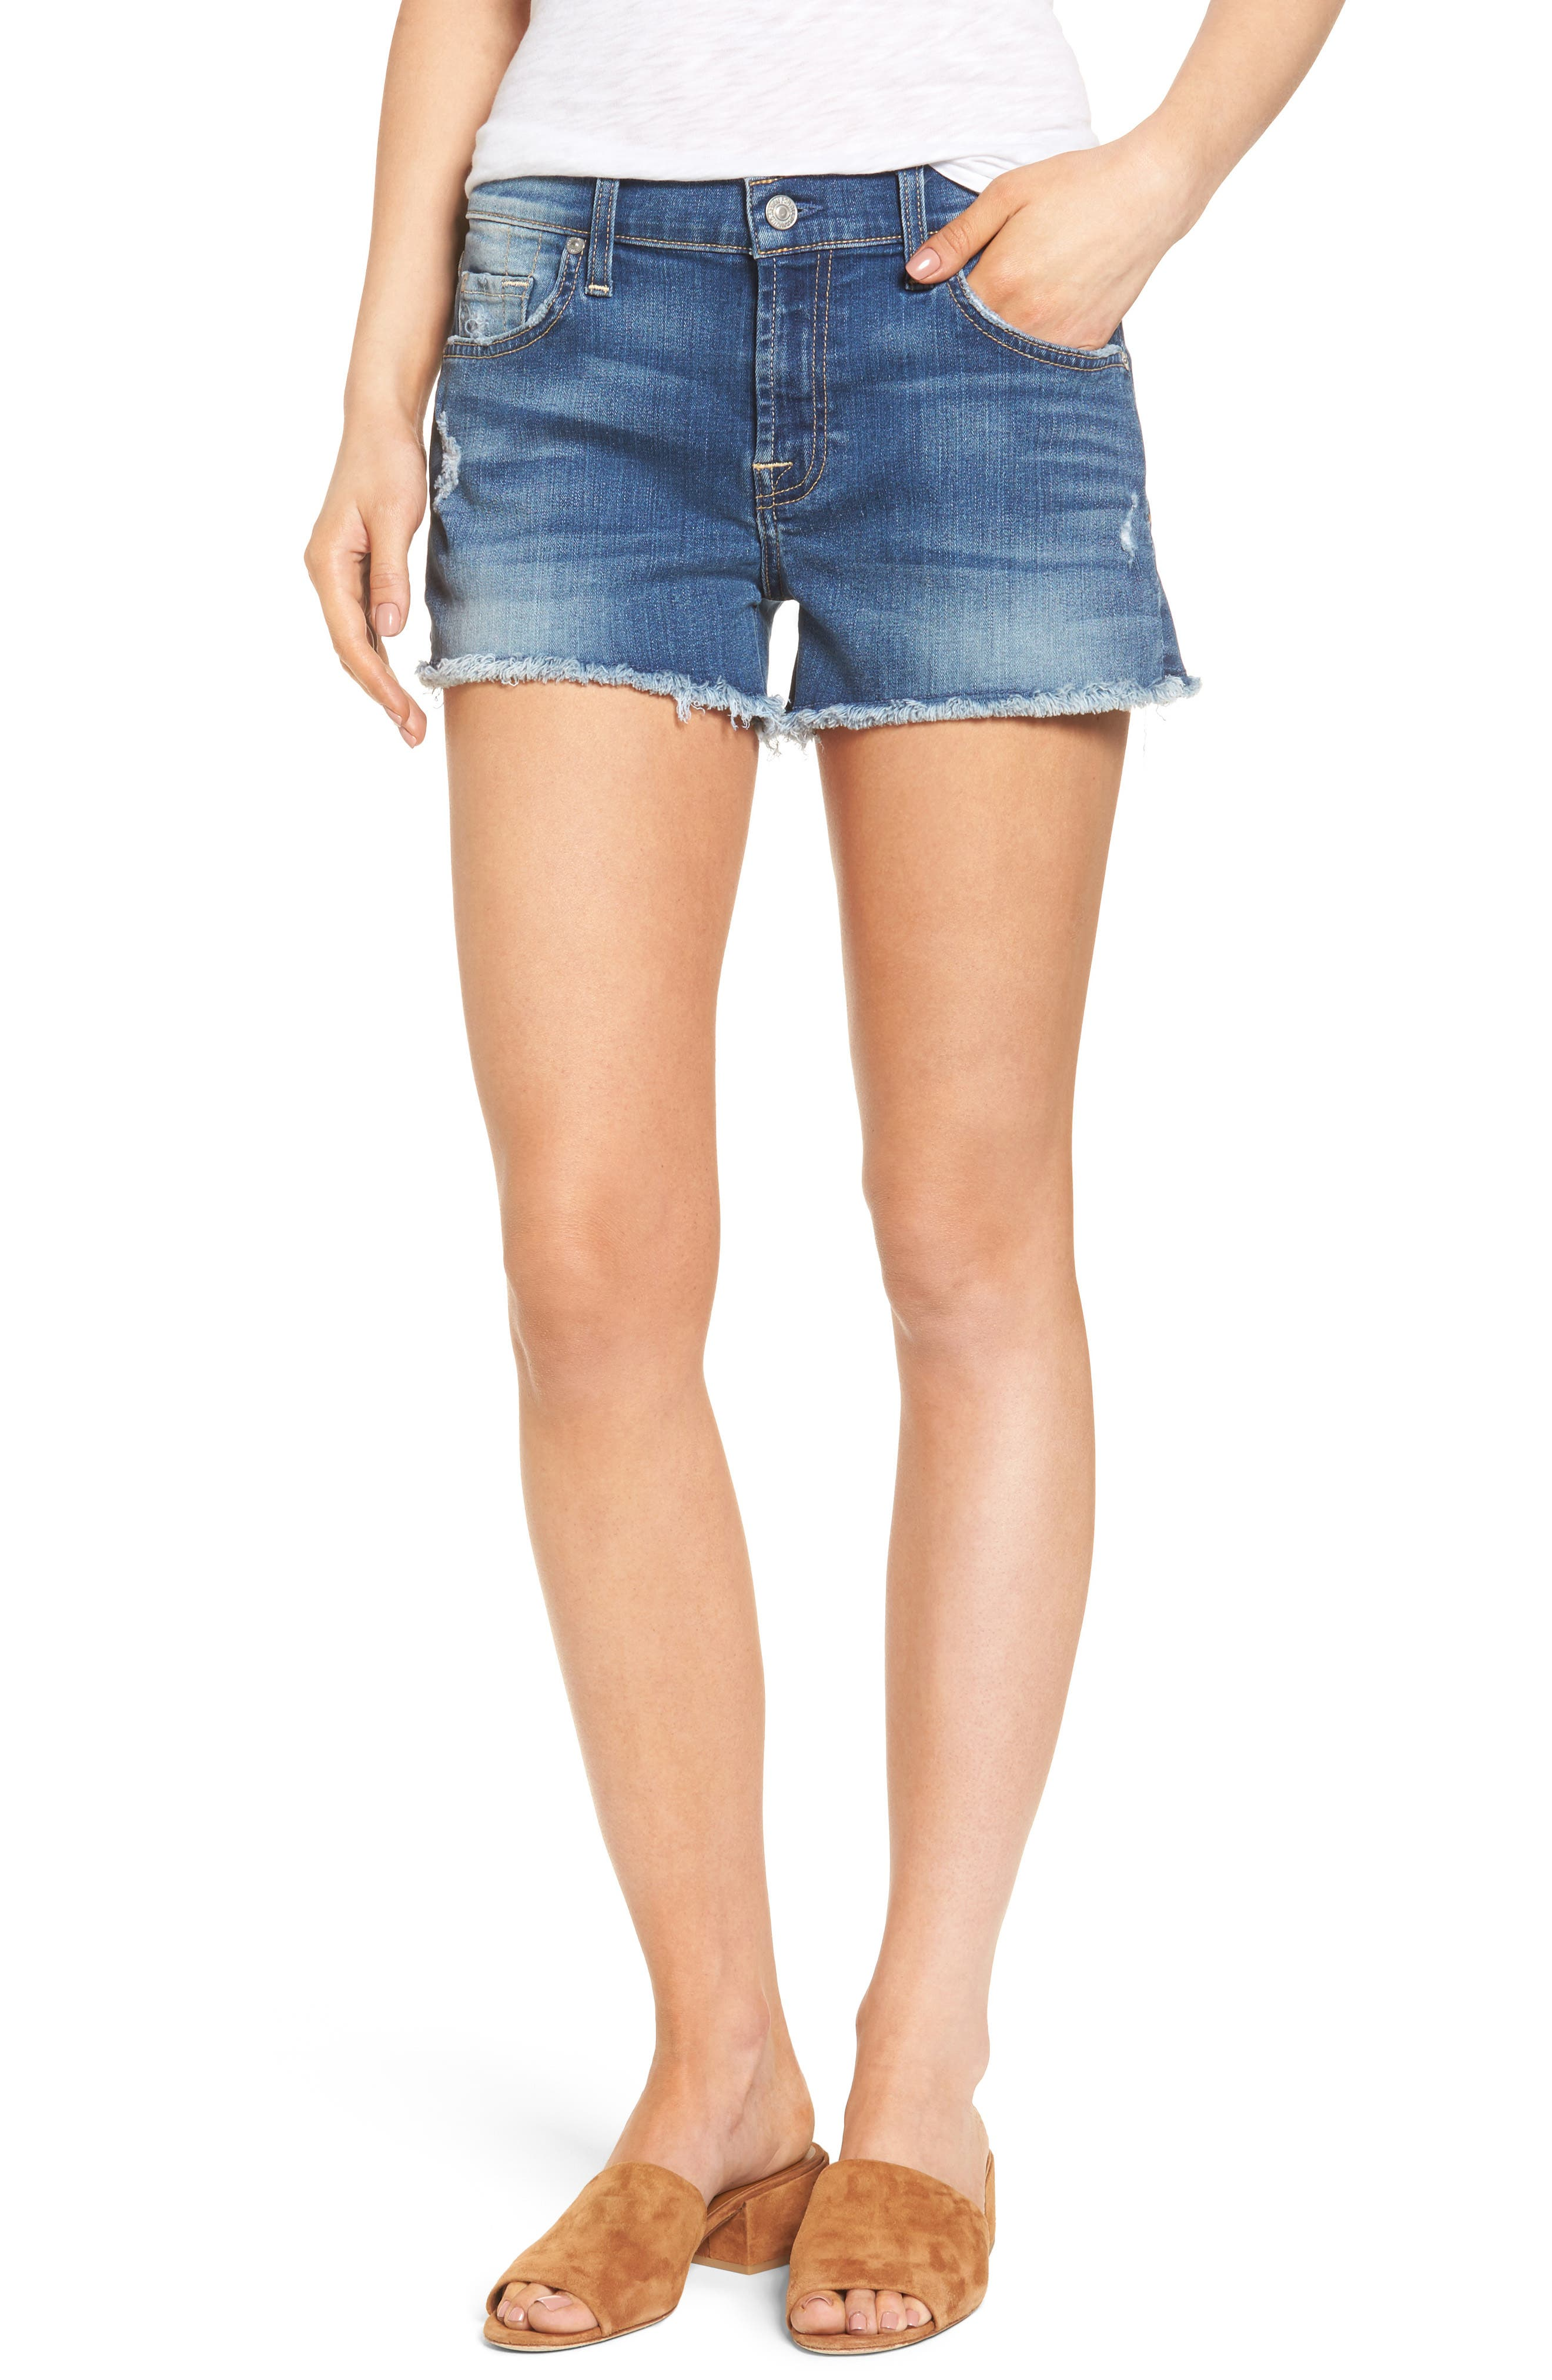 Alternate Image 1 Selected - 7 For All Mankind® High Waist Cutoff Denim Shorts (Ocean Mist) (Nordstrom Exclusive Color)